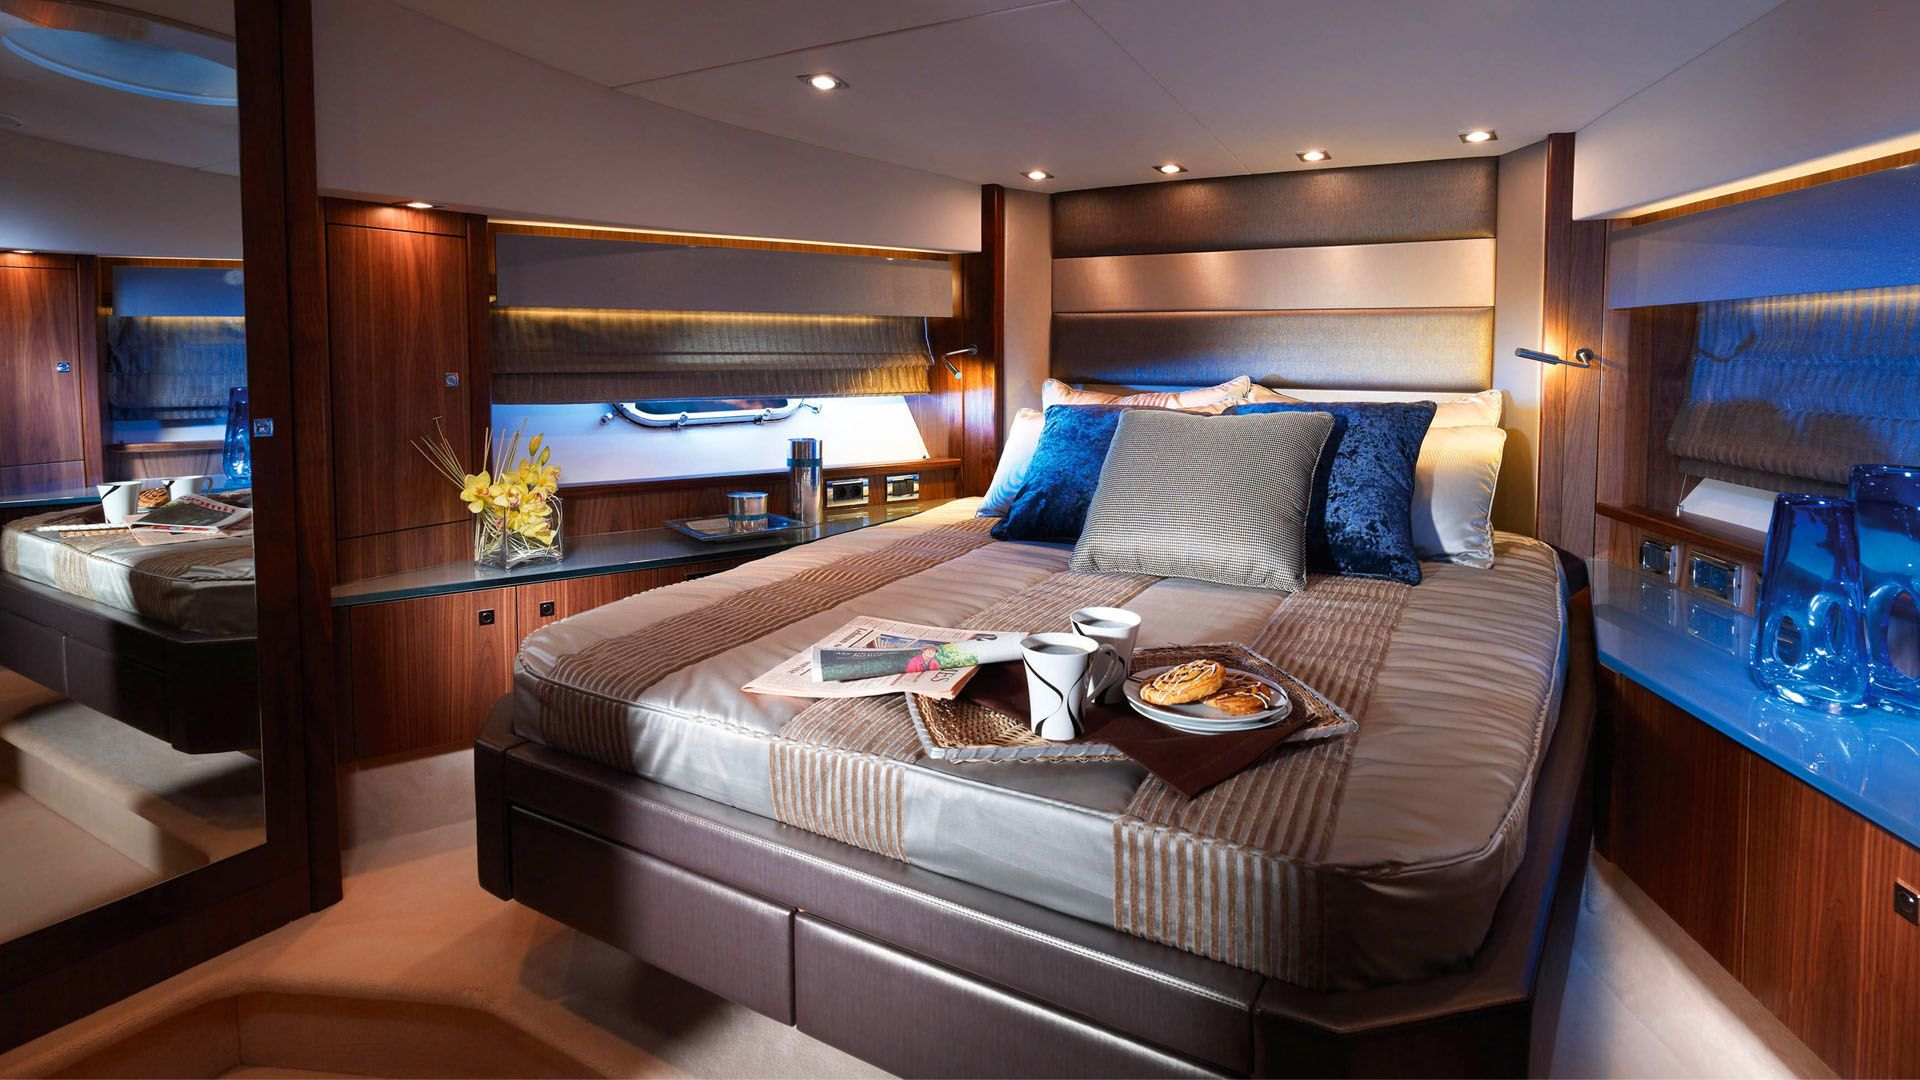 Bedroom Latest Hd Wallpaper With Images Luxury Yacht Interior